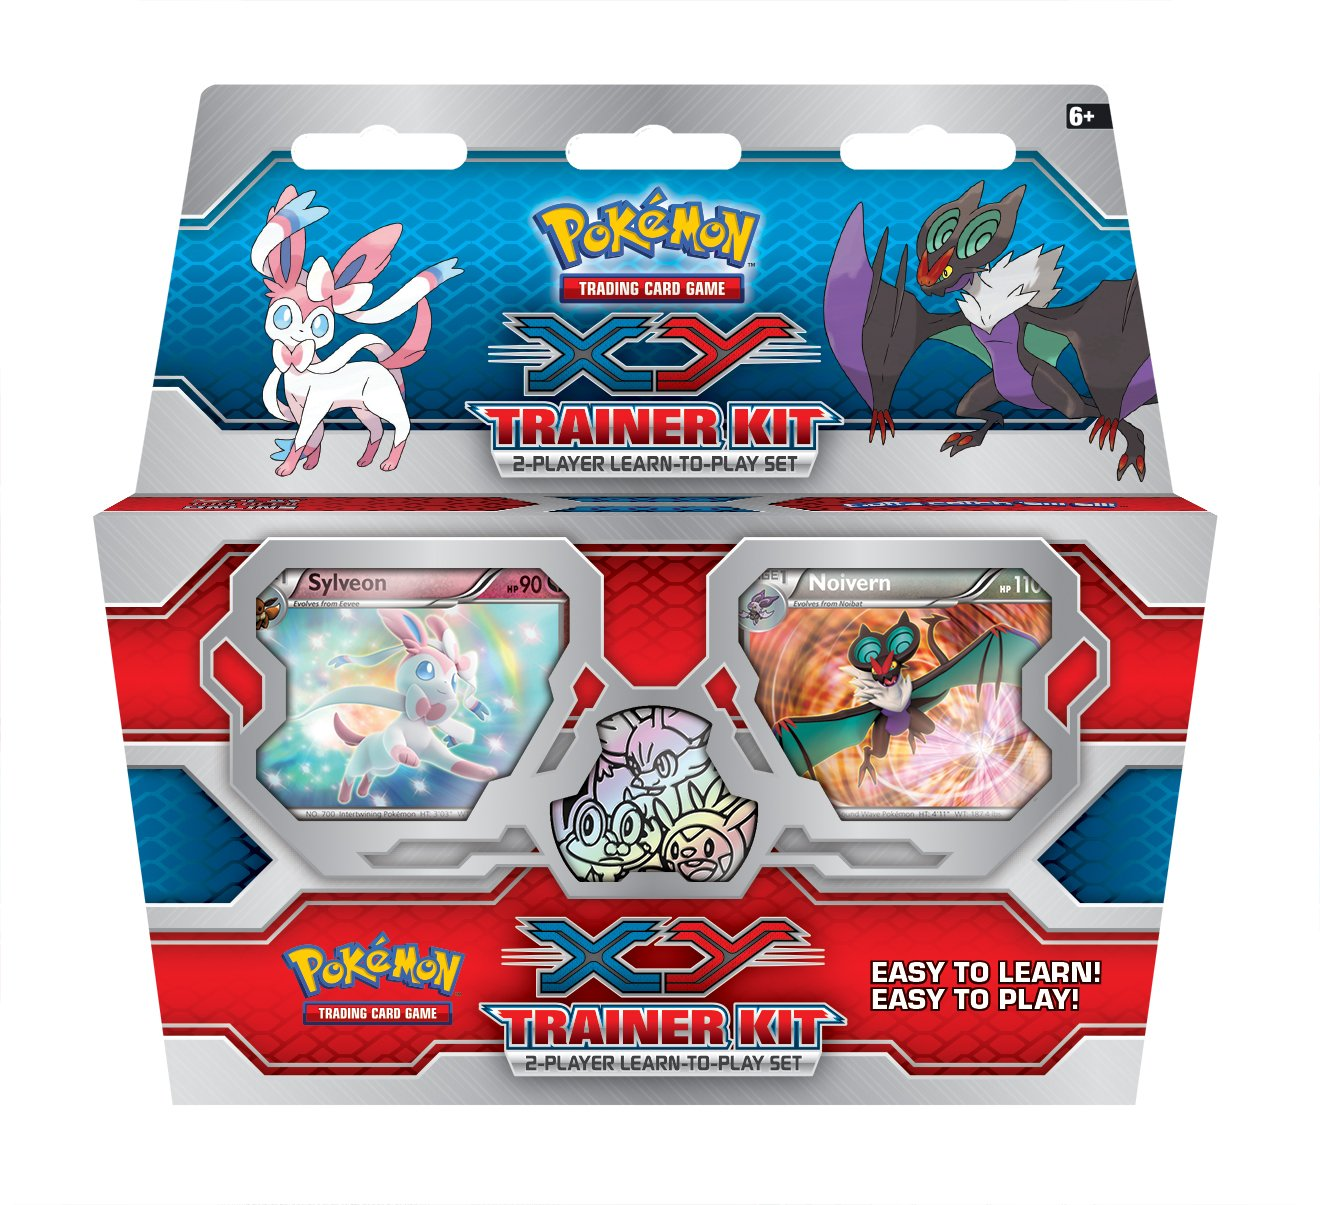 XY Trainer Kit: 2-Player Learn-to-Play Set (Pokémon Trading Card Game)